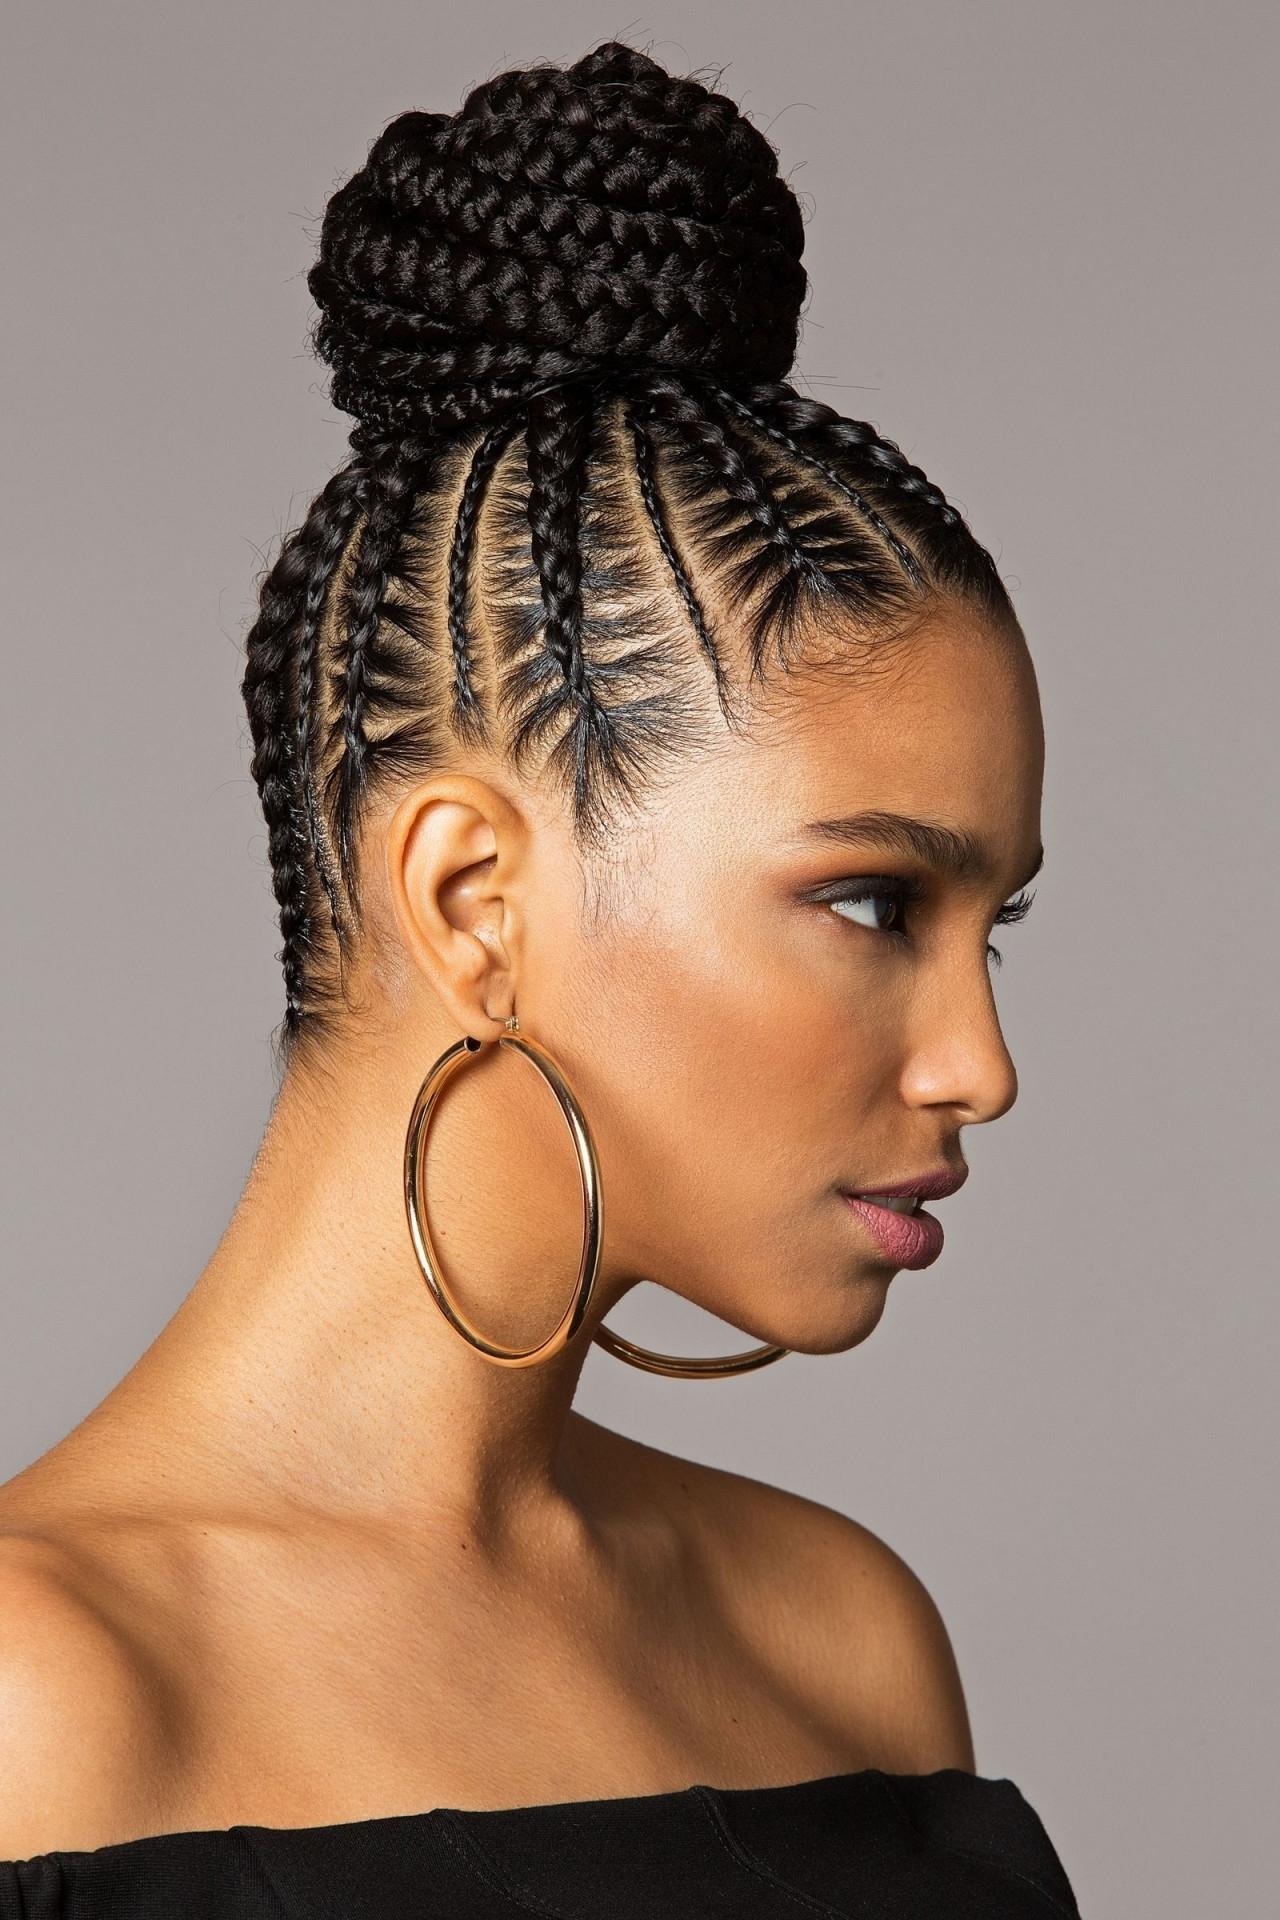 Braiding Hairstyles For Black Women With Round Face New You Re Going Within Recent Braided Hairstyles For Round Faces (View 13 of 15)